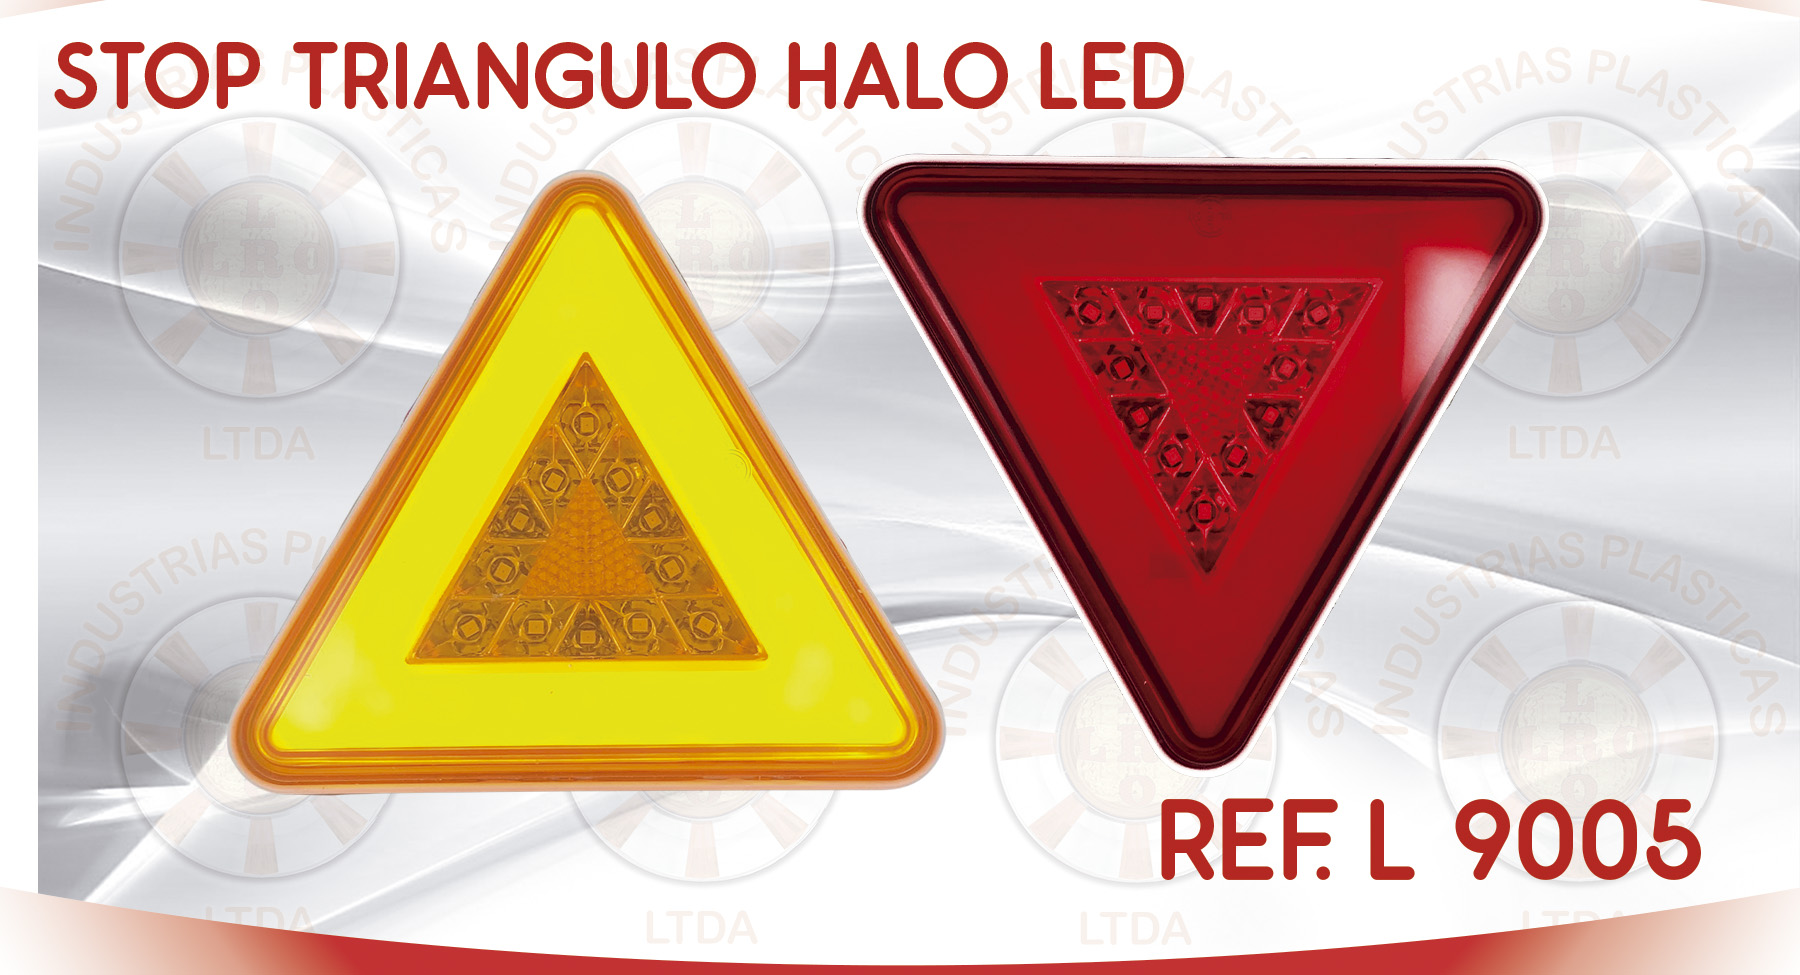 L 9005 STOP TRIANGULO HALO LED